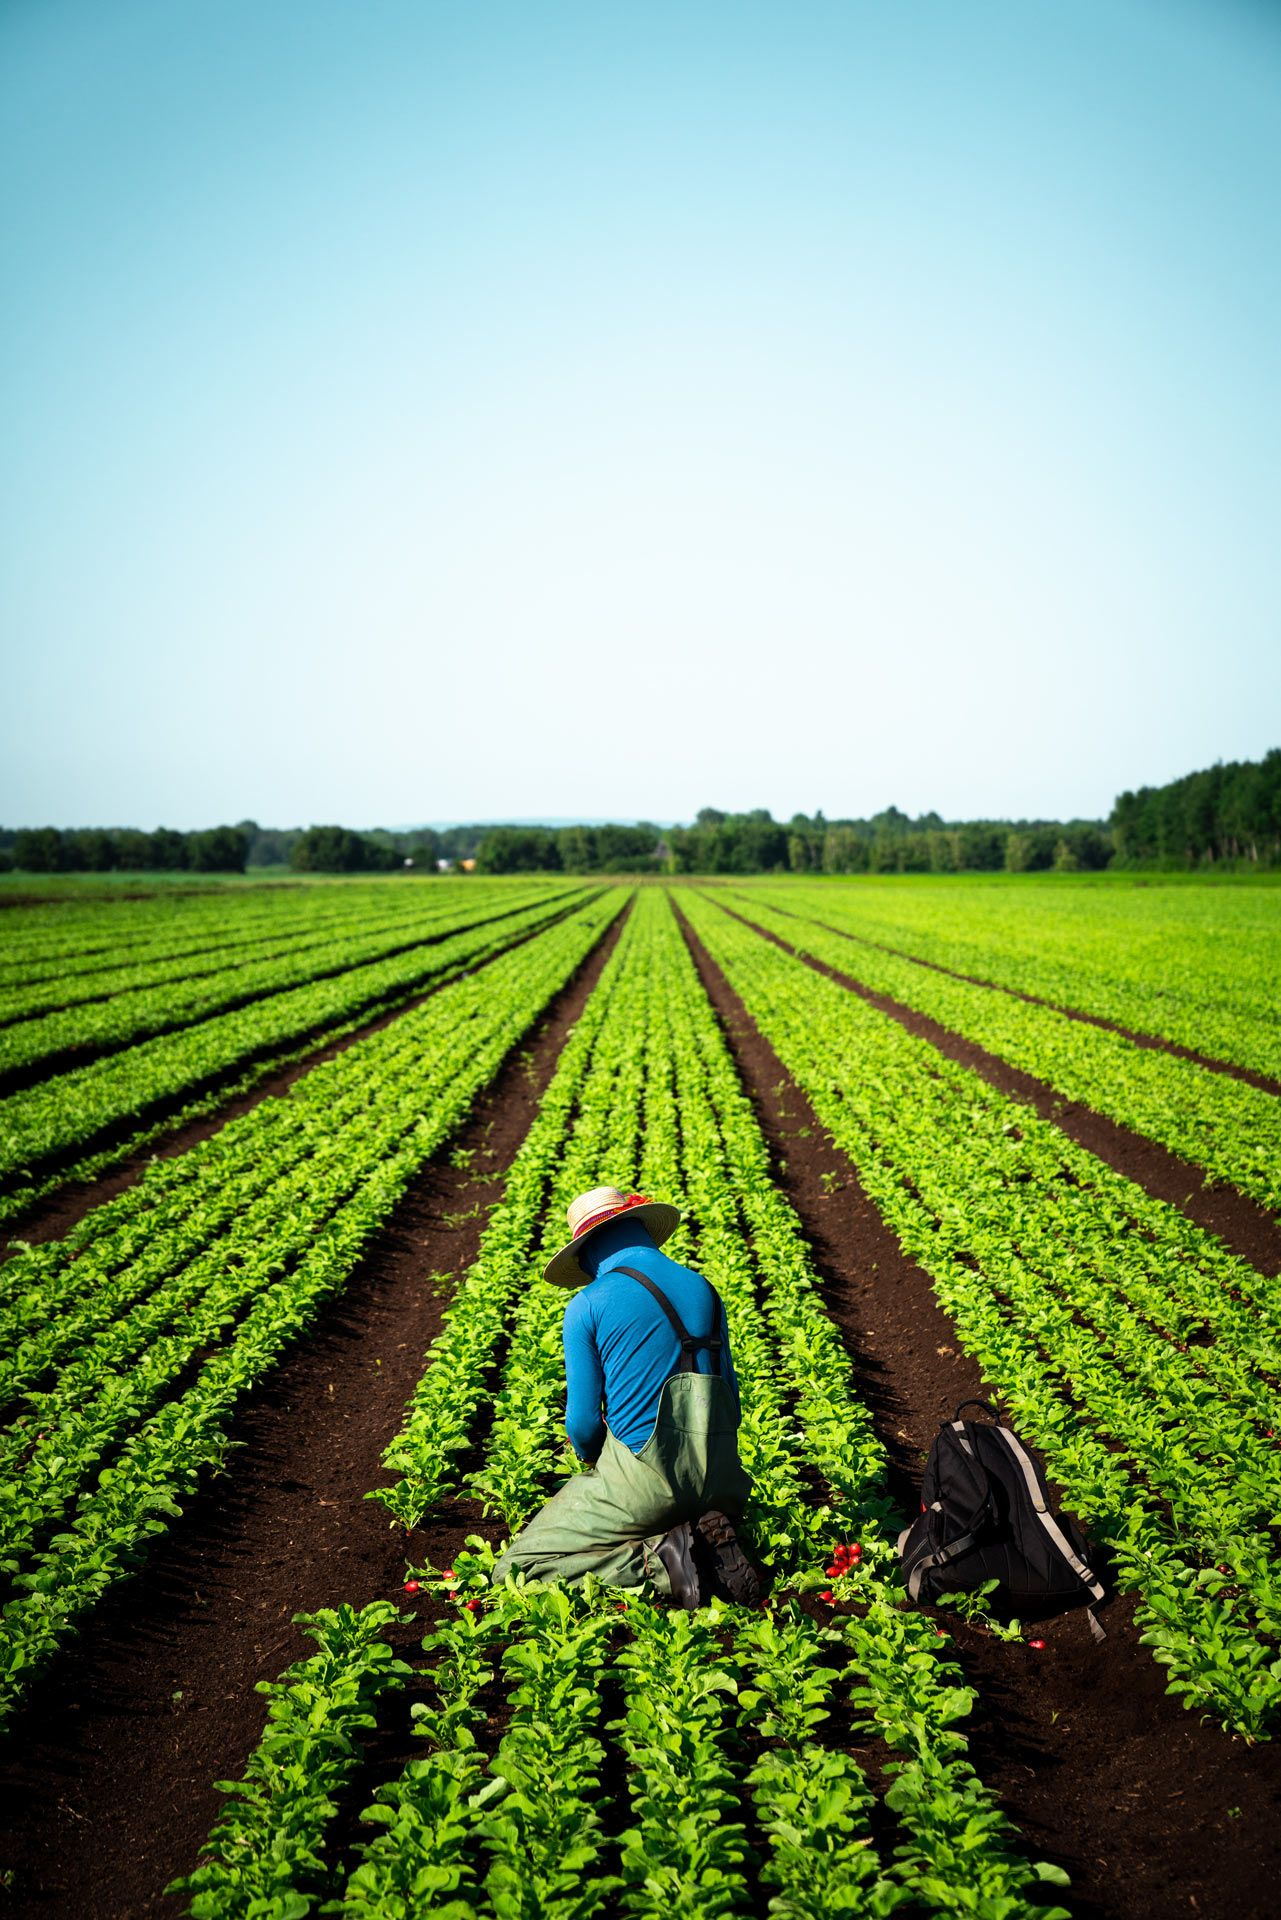 farm worker kneeling in field to harvest radishes by Bruno Florin for Sollio Agriculture